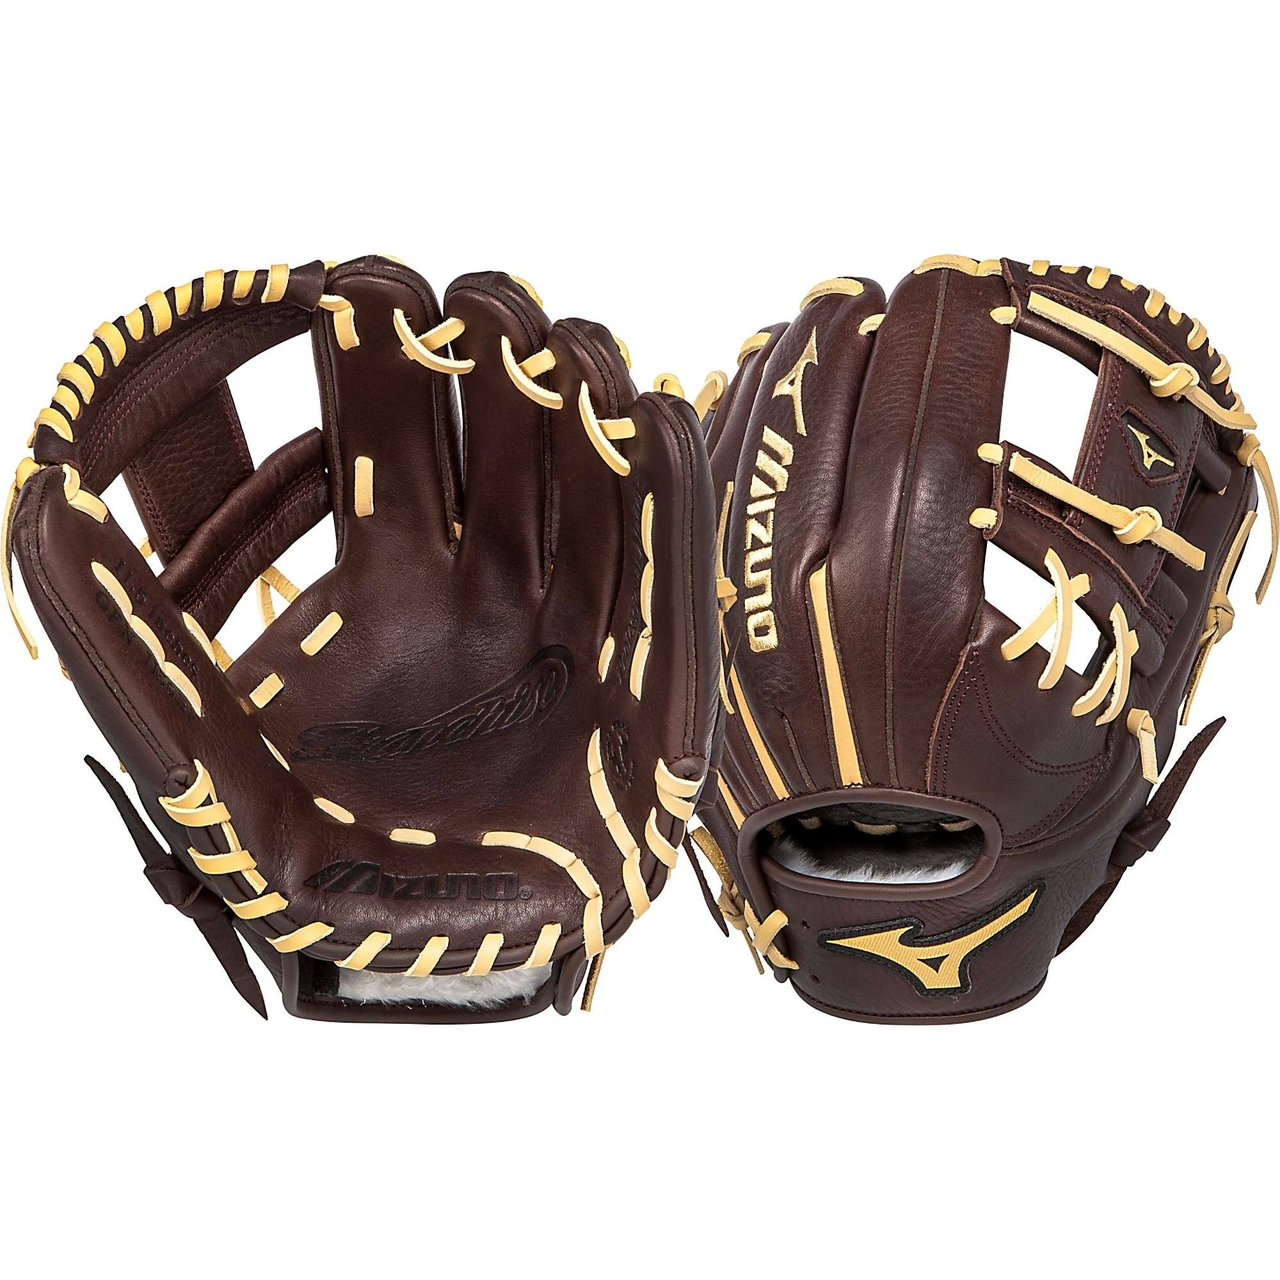 mizuno-franchise-series-gfn1100b1-baseball-glove-11-inch-right-handed-throw GFN1100B1-Right Handed Throw Mizuno New Mizuno Franchise Series GFN1100B1 Baseball Glove 11 inch Right Handed Throw